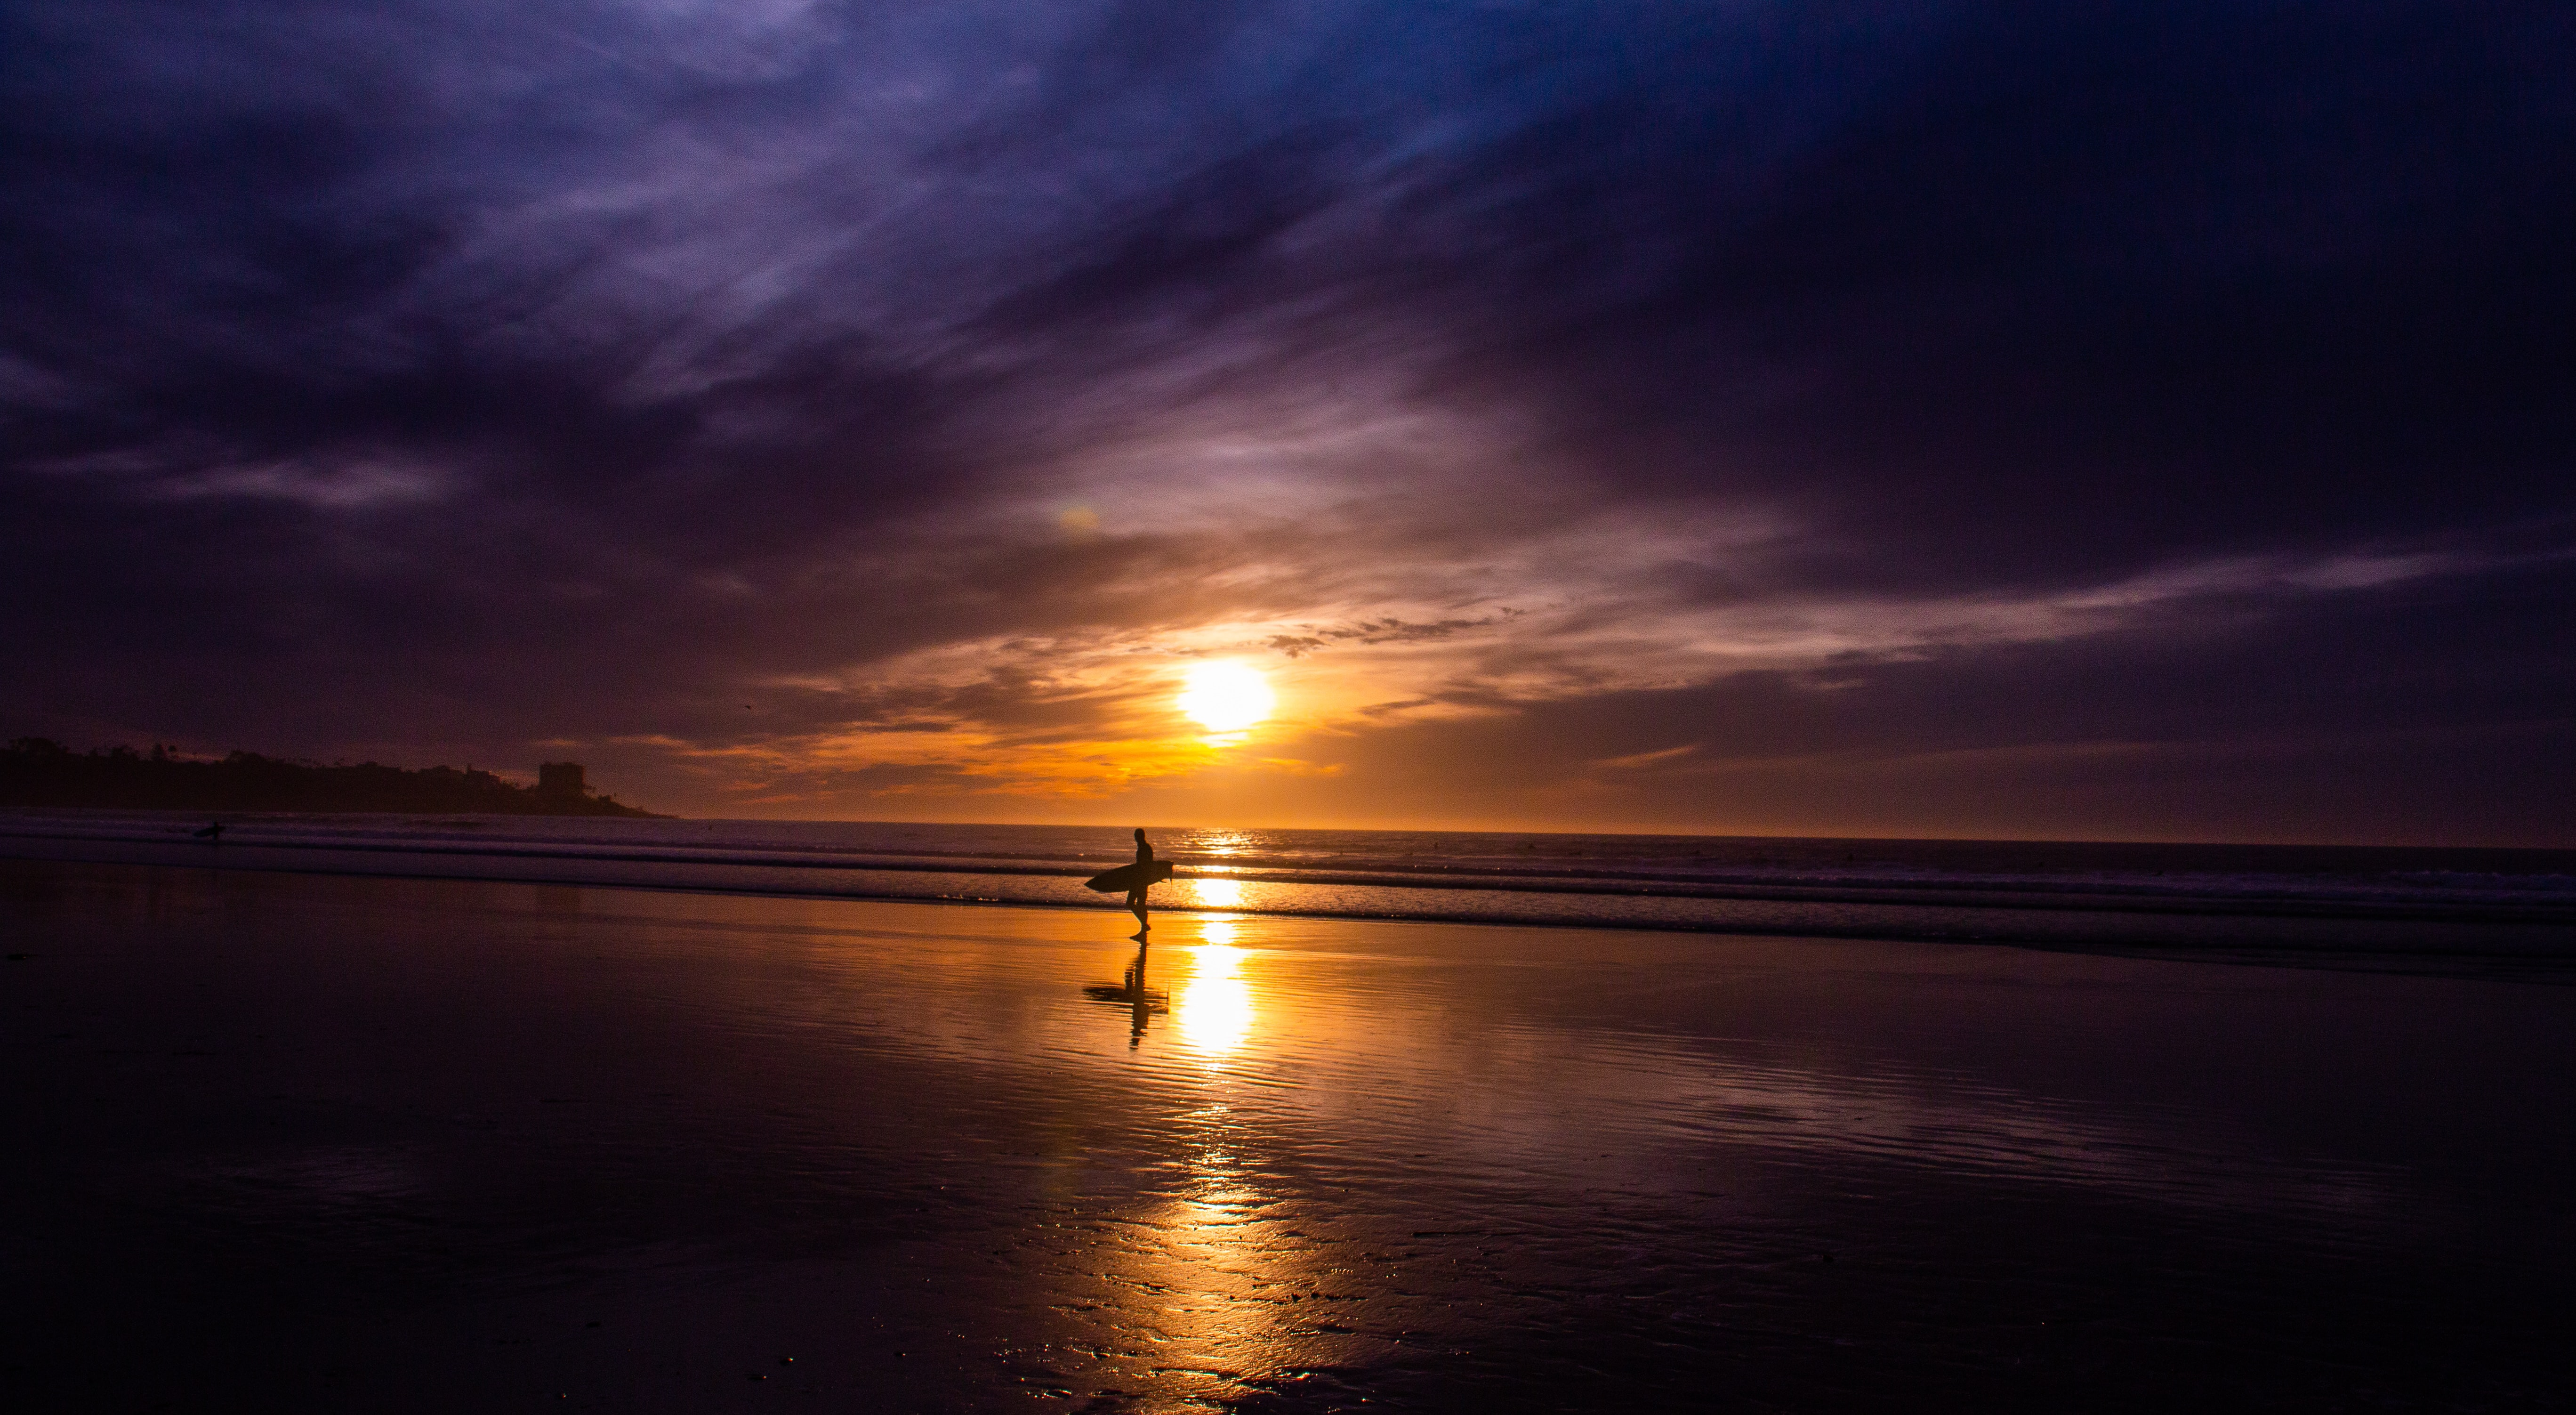 silhouette photography of person standing on shore while holding surfboard